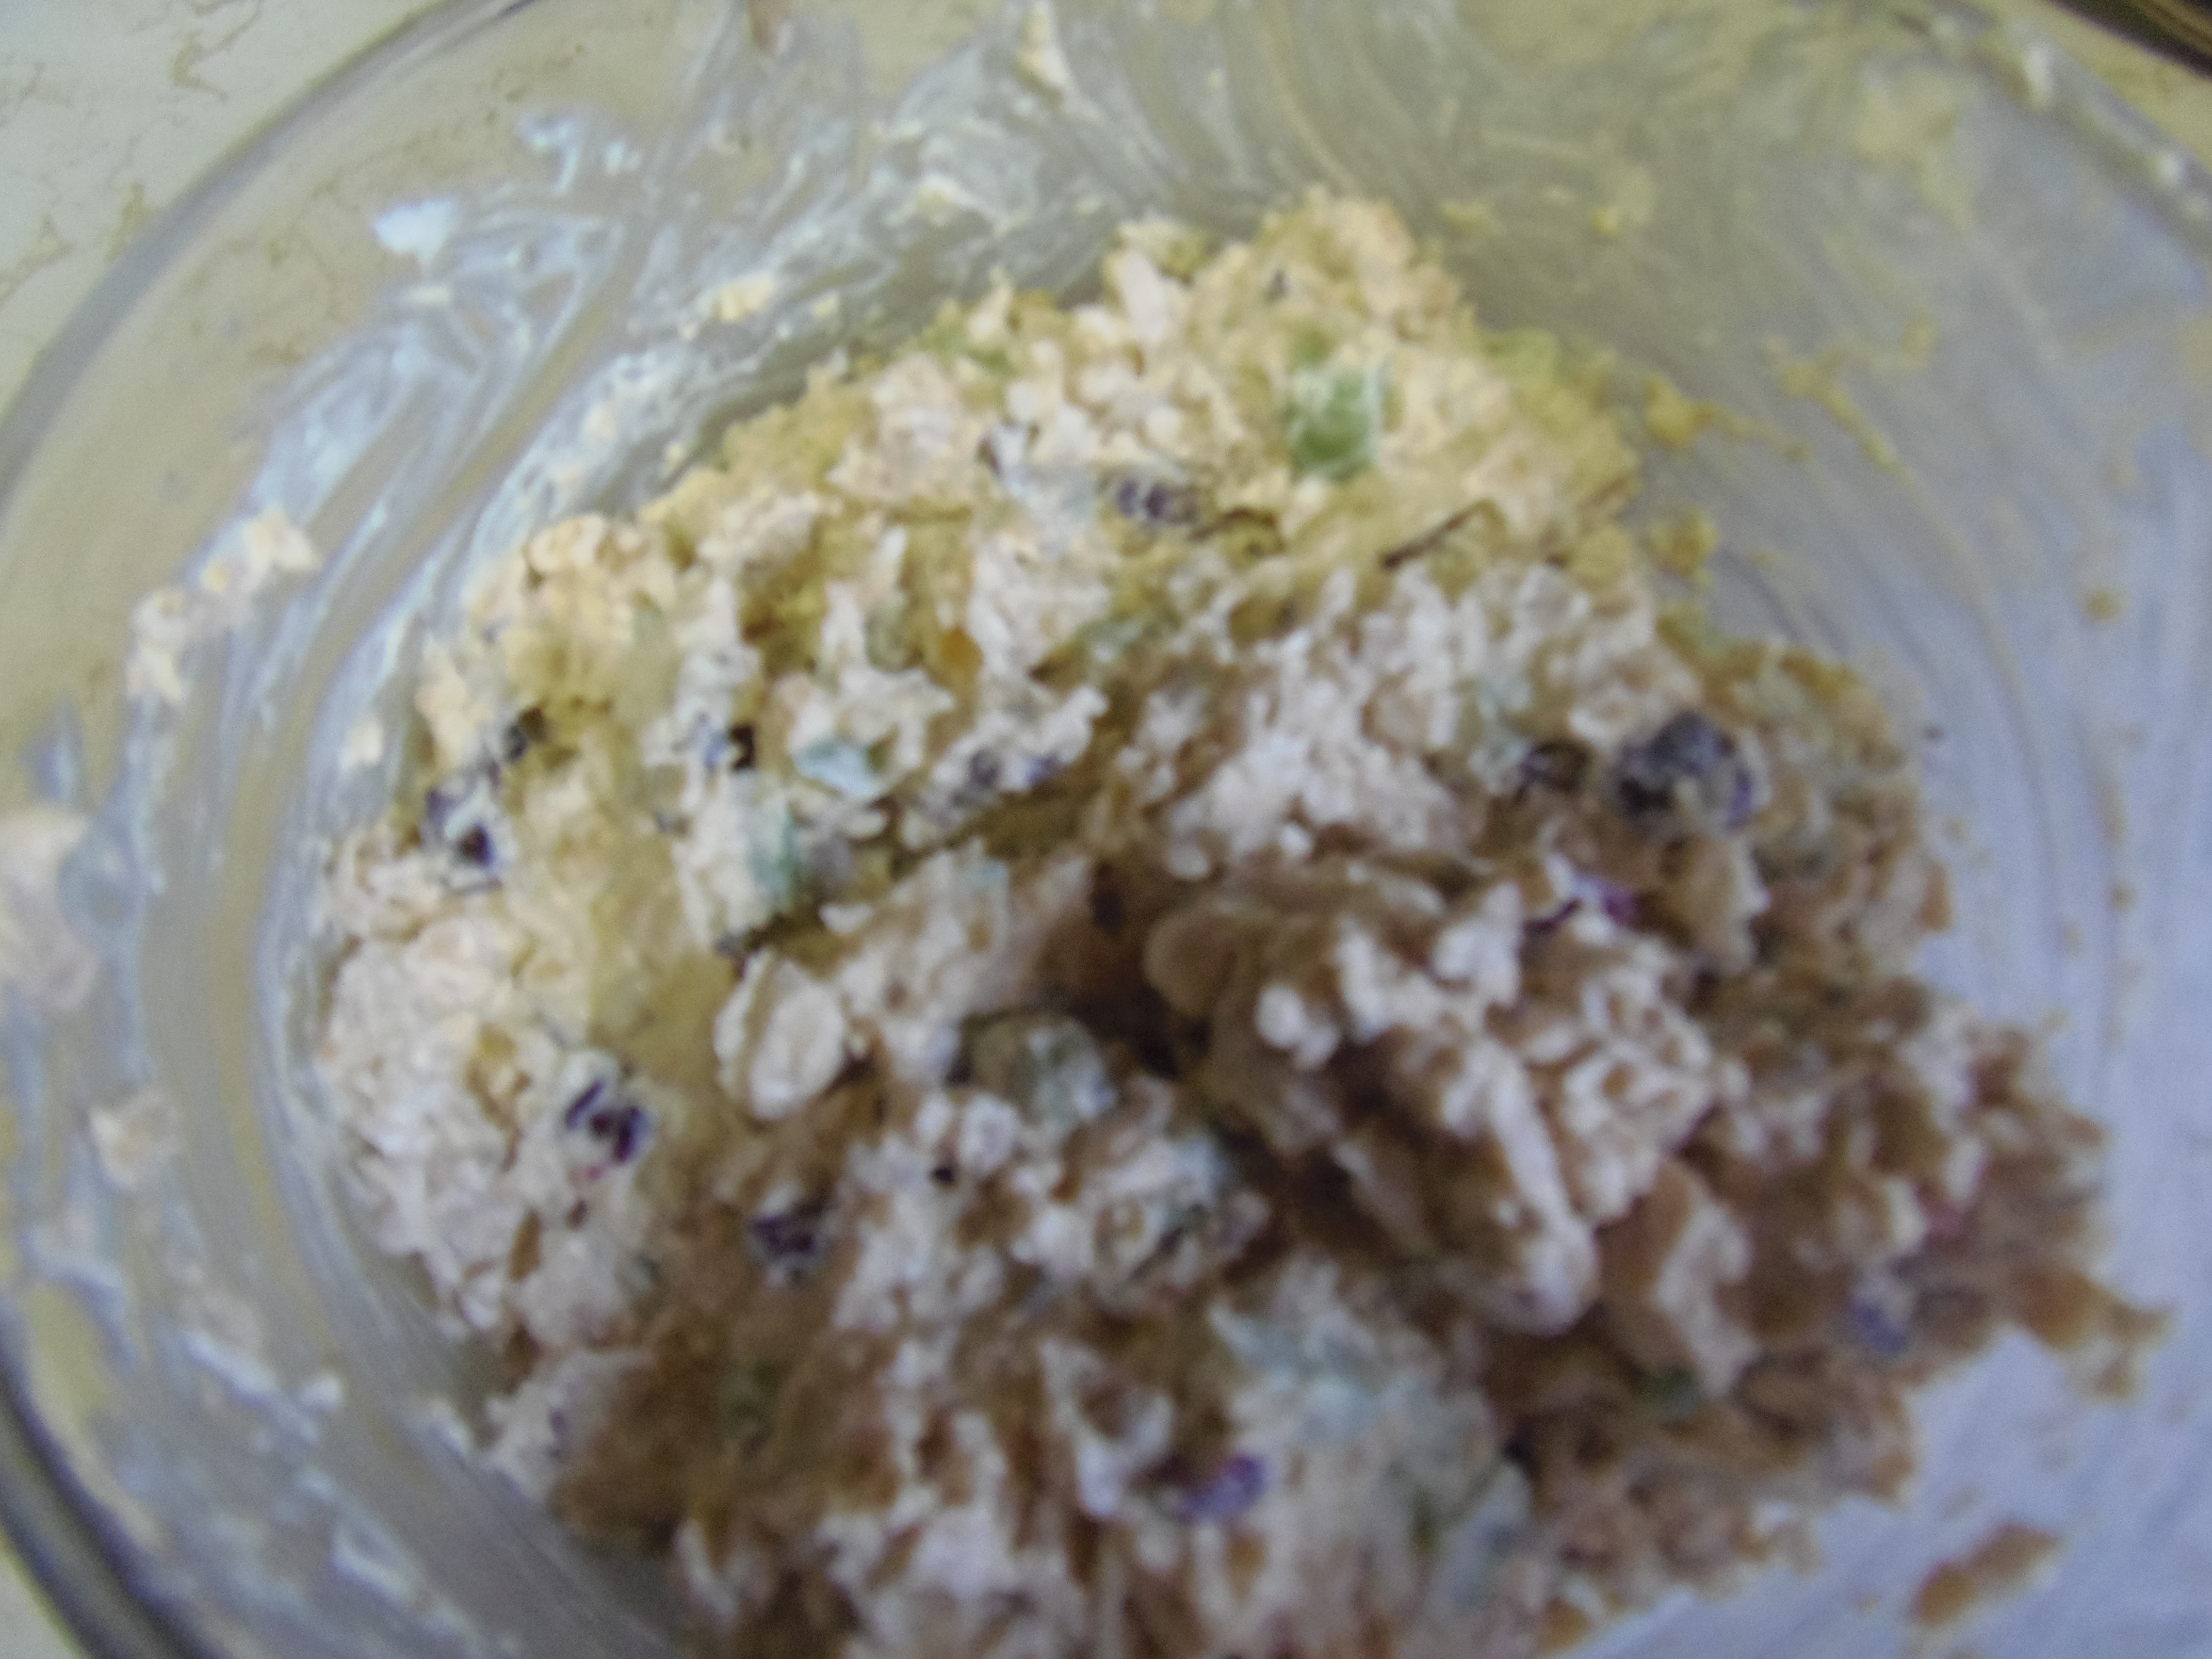 jamaican Divas Meatless Monday -finished chickpea salad